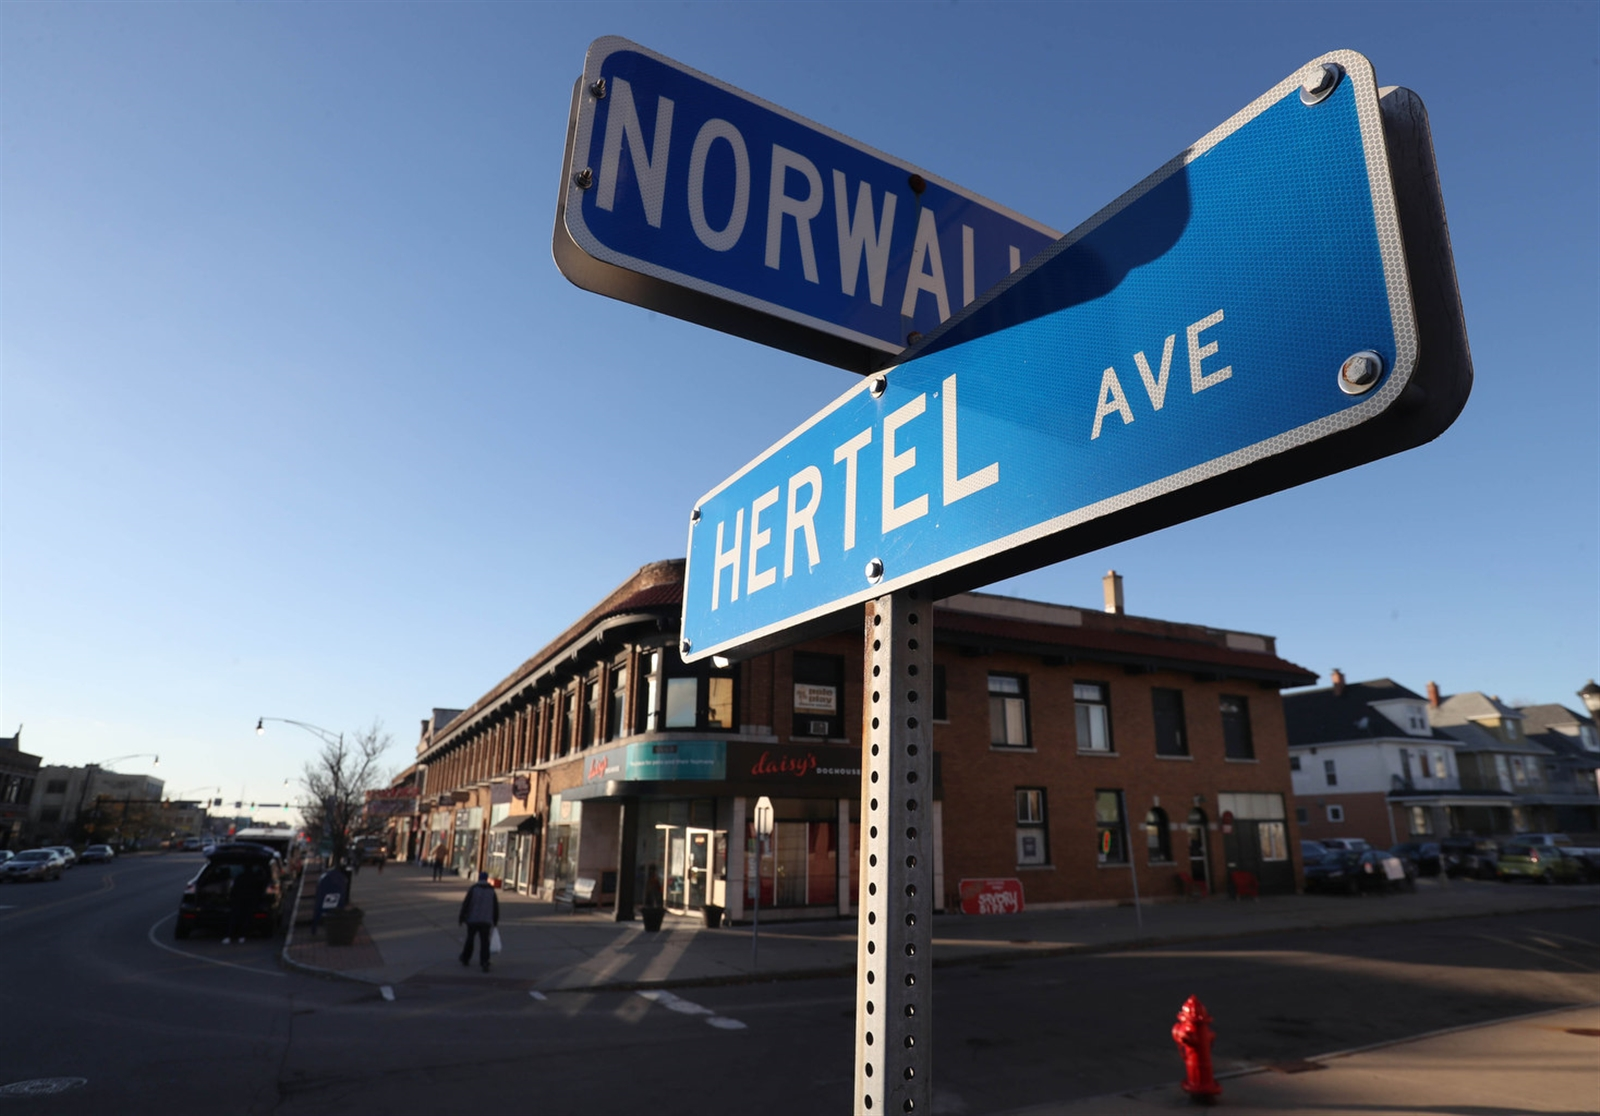 Hertel Avenue in Buffalo is a  shopping destination, especially at Christmas time.